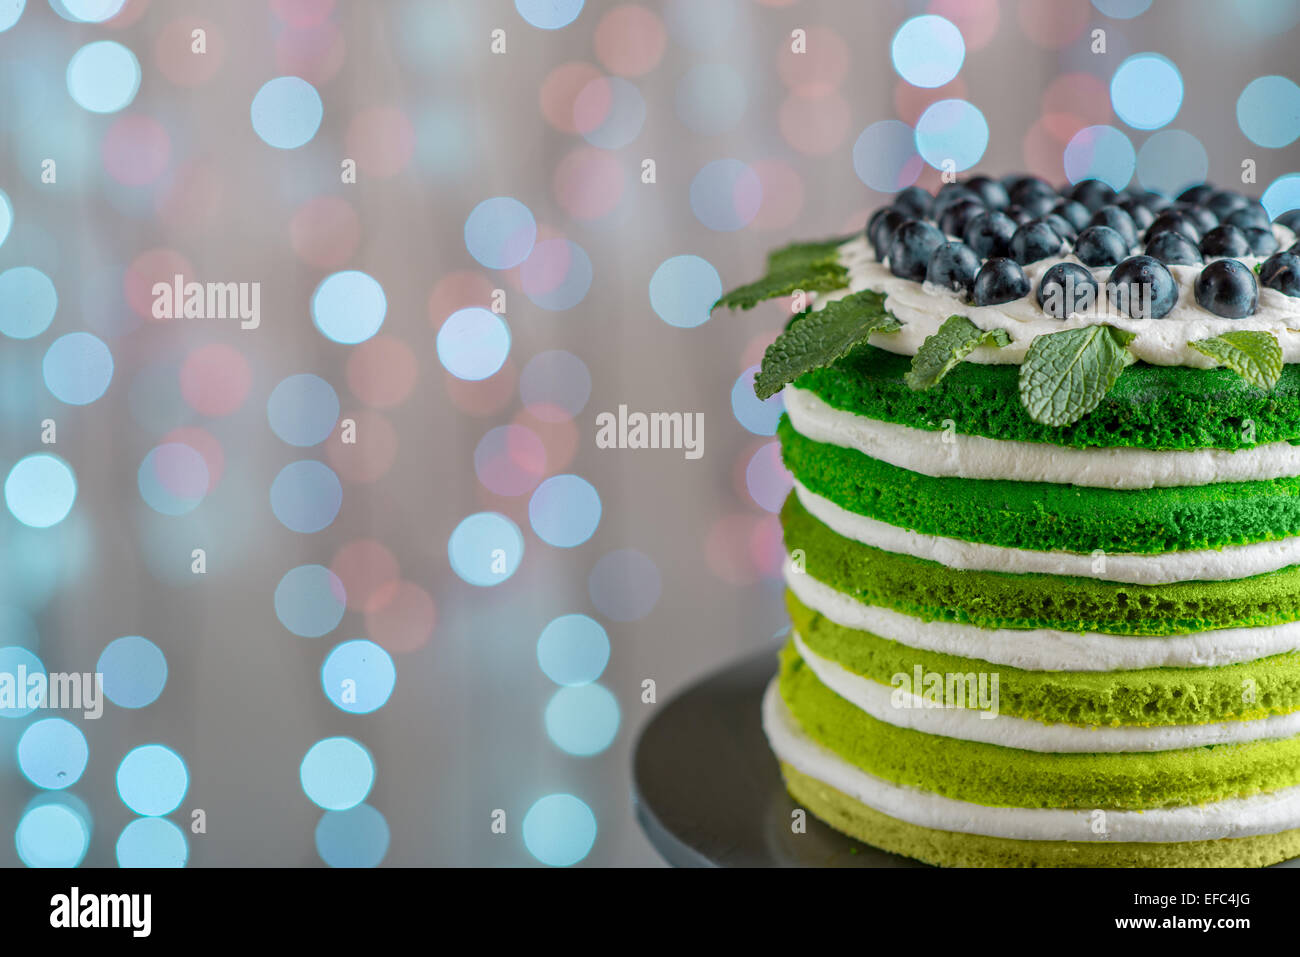 Nice Sponge Happy Birthday Cake With Mascarpone And Grapes On The Stand Festive Light Bokeh